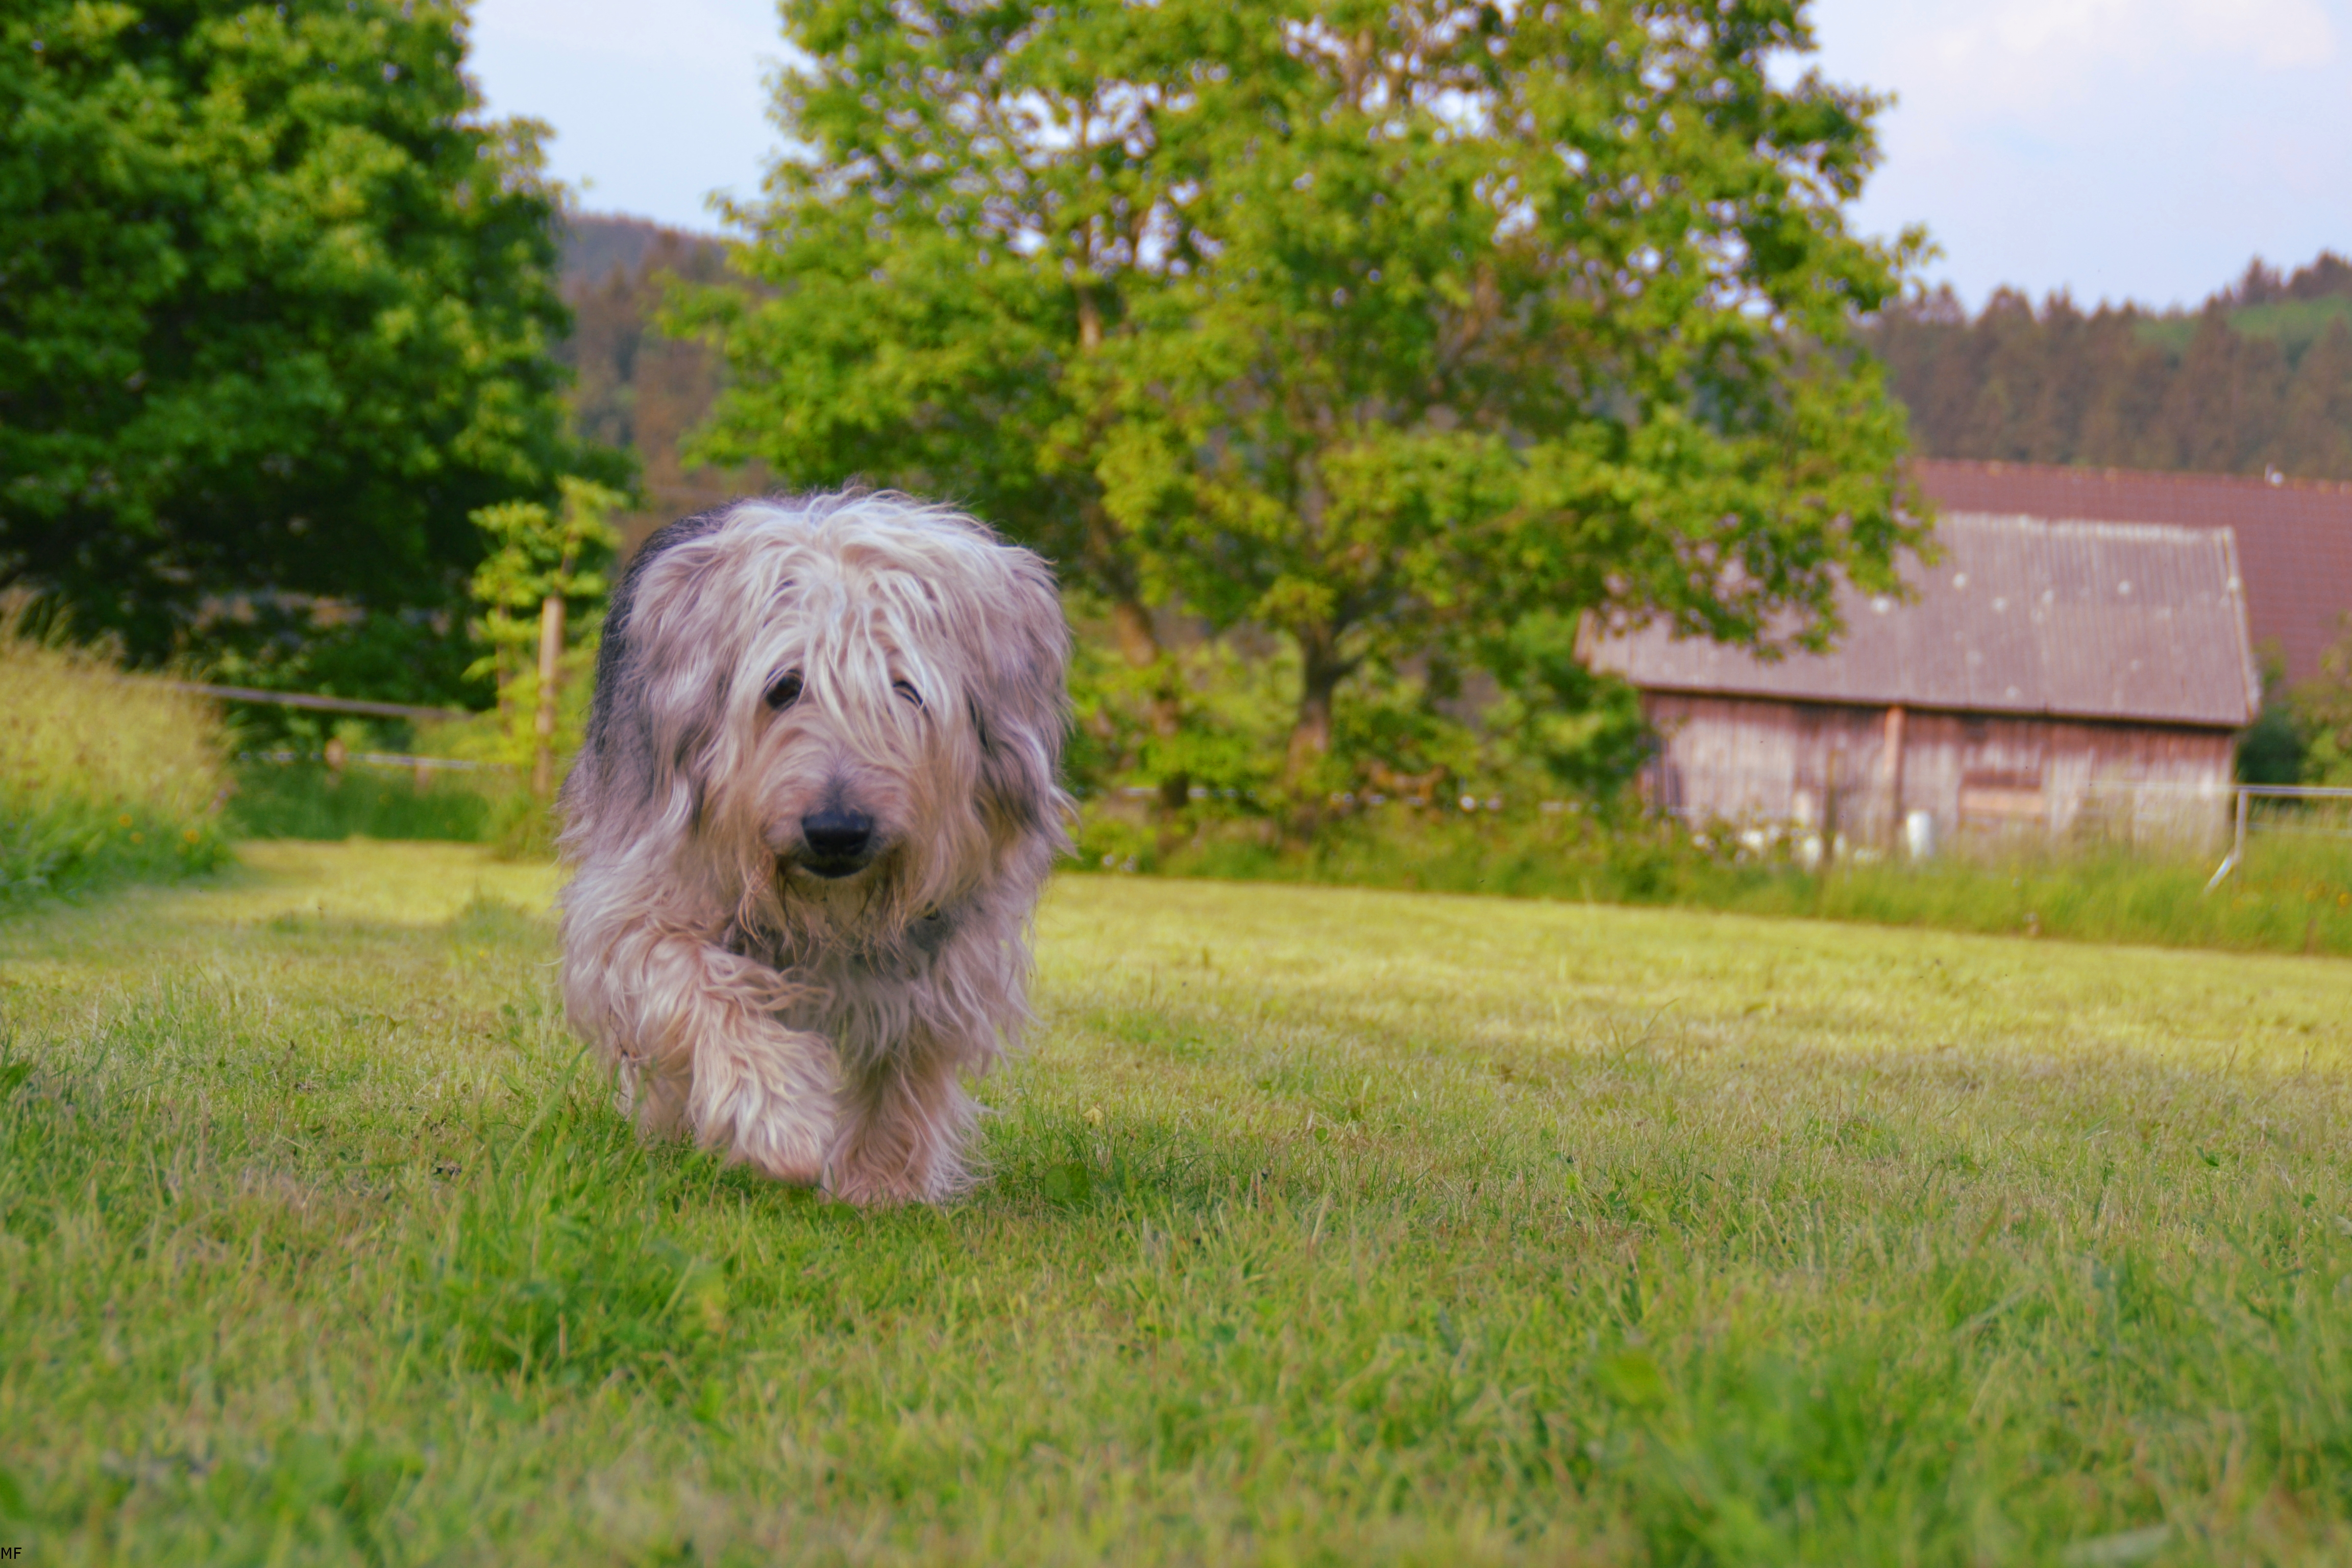 Brown Gray And White Hairy Medium Size Dog Walking On